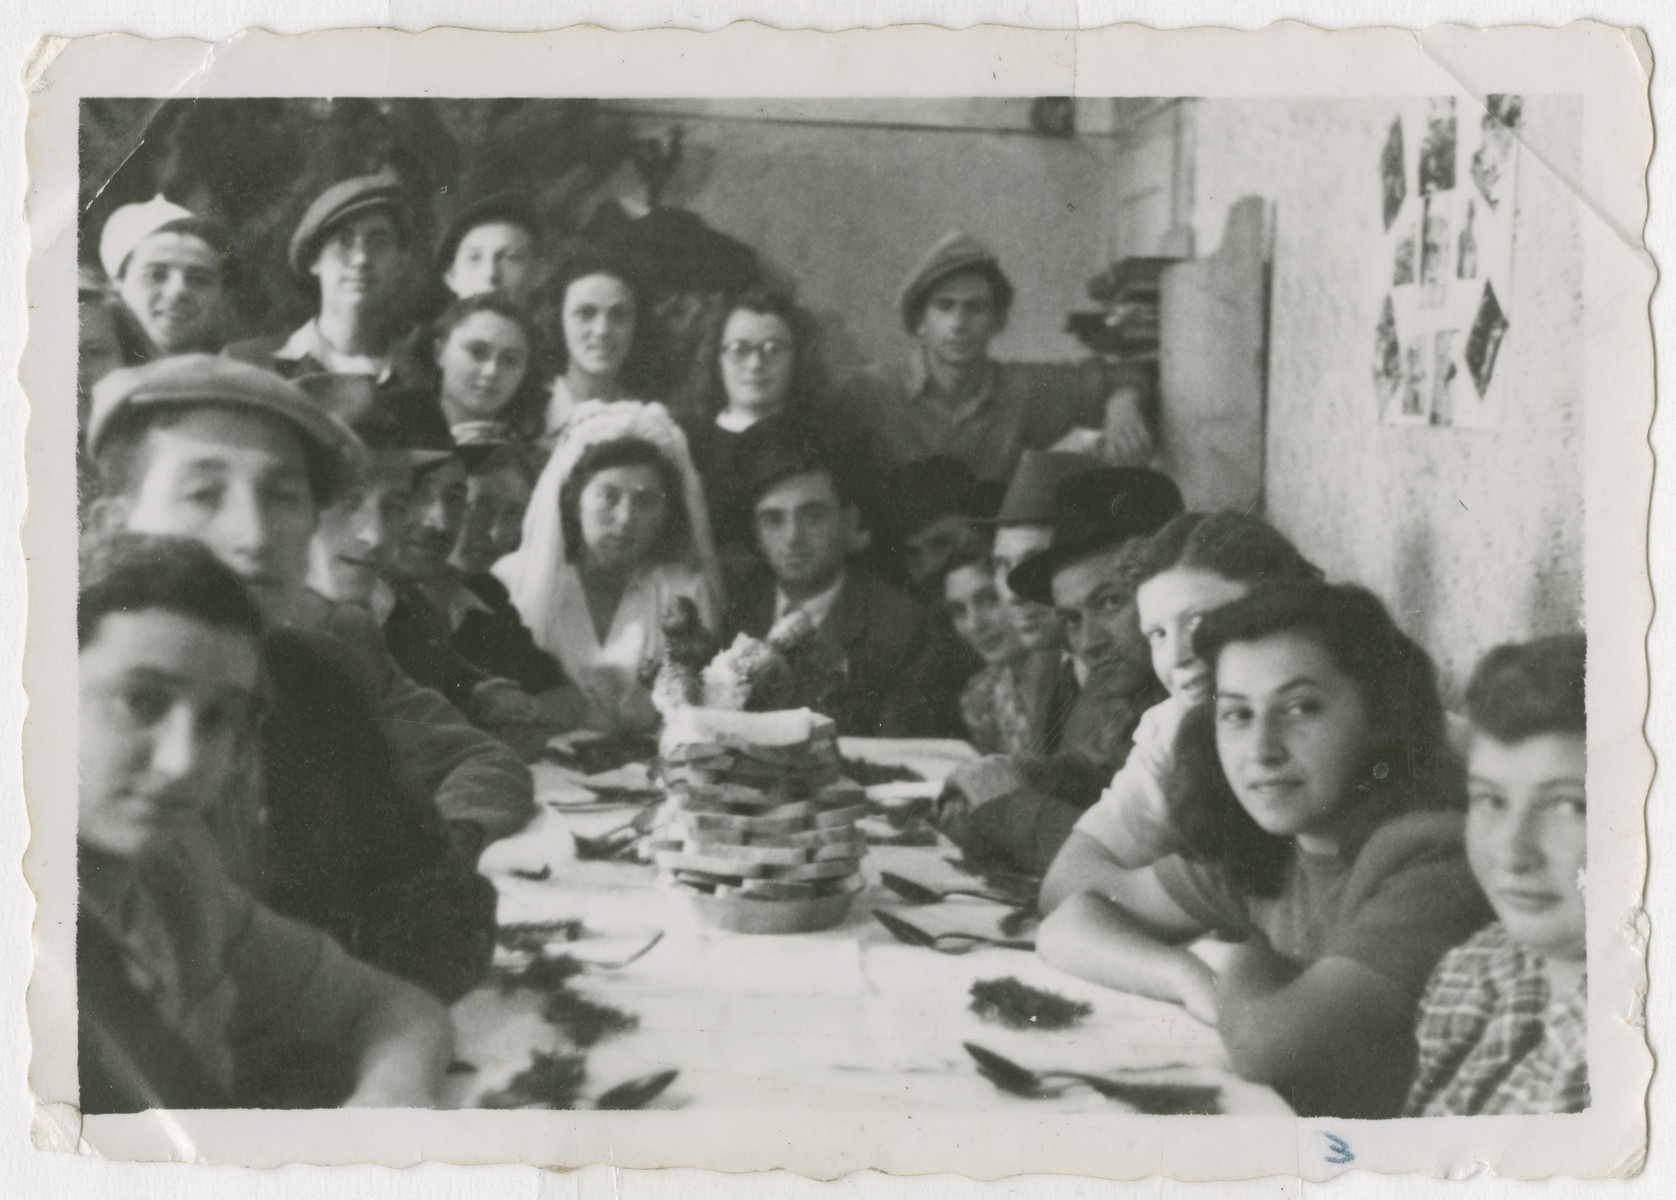 Members of Kibbutz Bnei Akiva celebrate the wedding of two of its members.  Sziku Smilovic is pictured standing on the right.  The other men all from Munkacz are Mojshe, Zelig, Josef Klein, Jack Reiss and Sender.